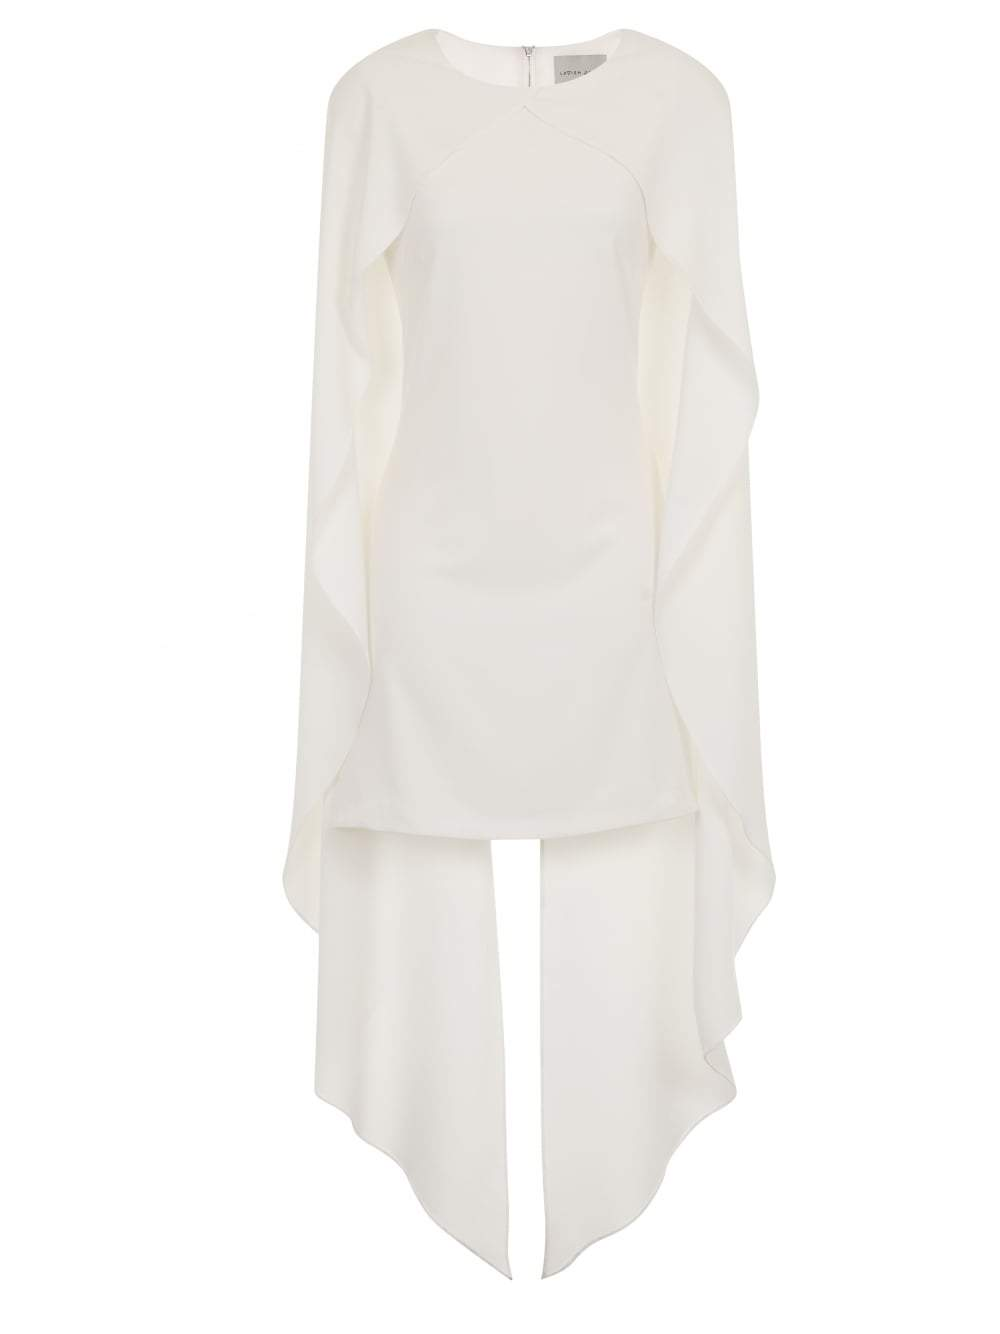 White Maxi Cape Overlay Shift Dress